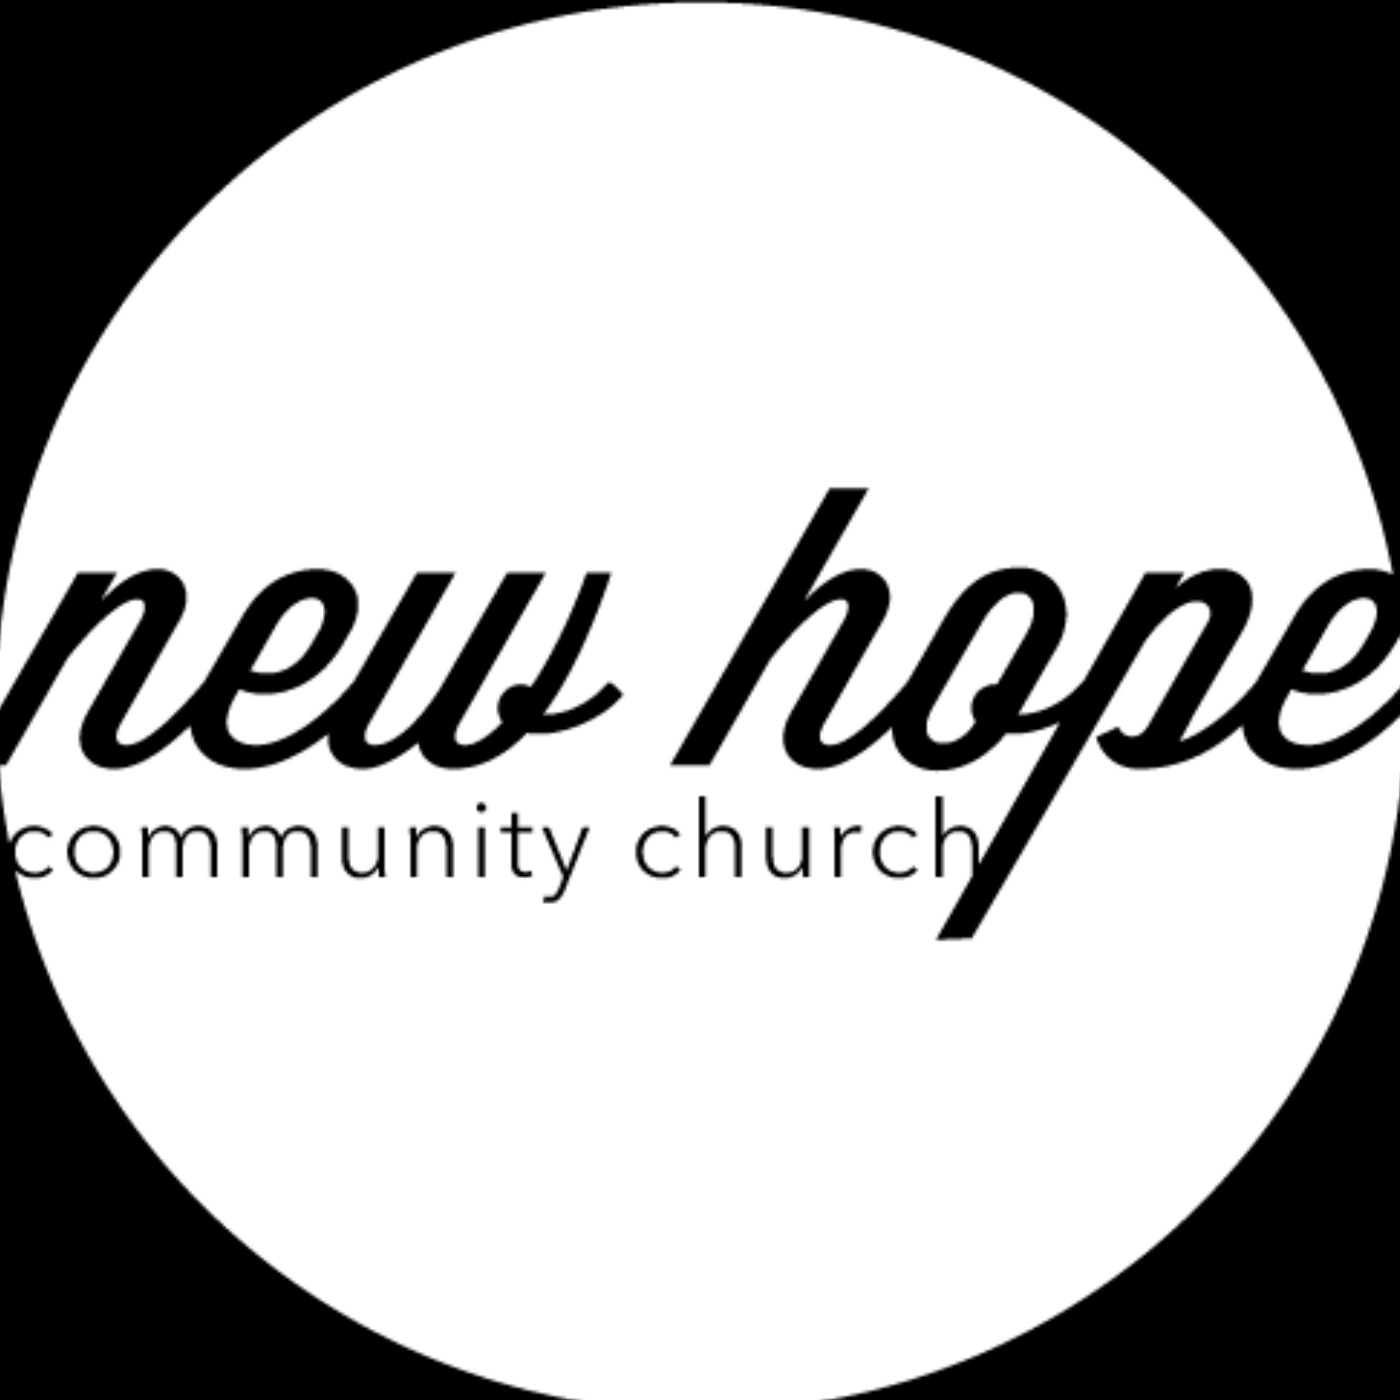 New Hope Community Church Podcast